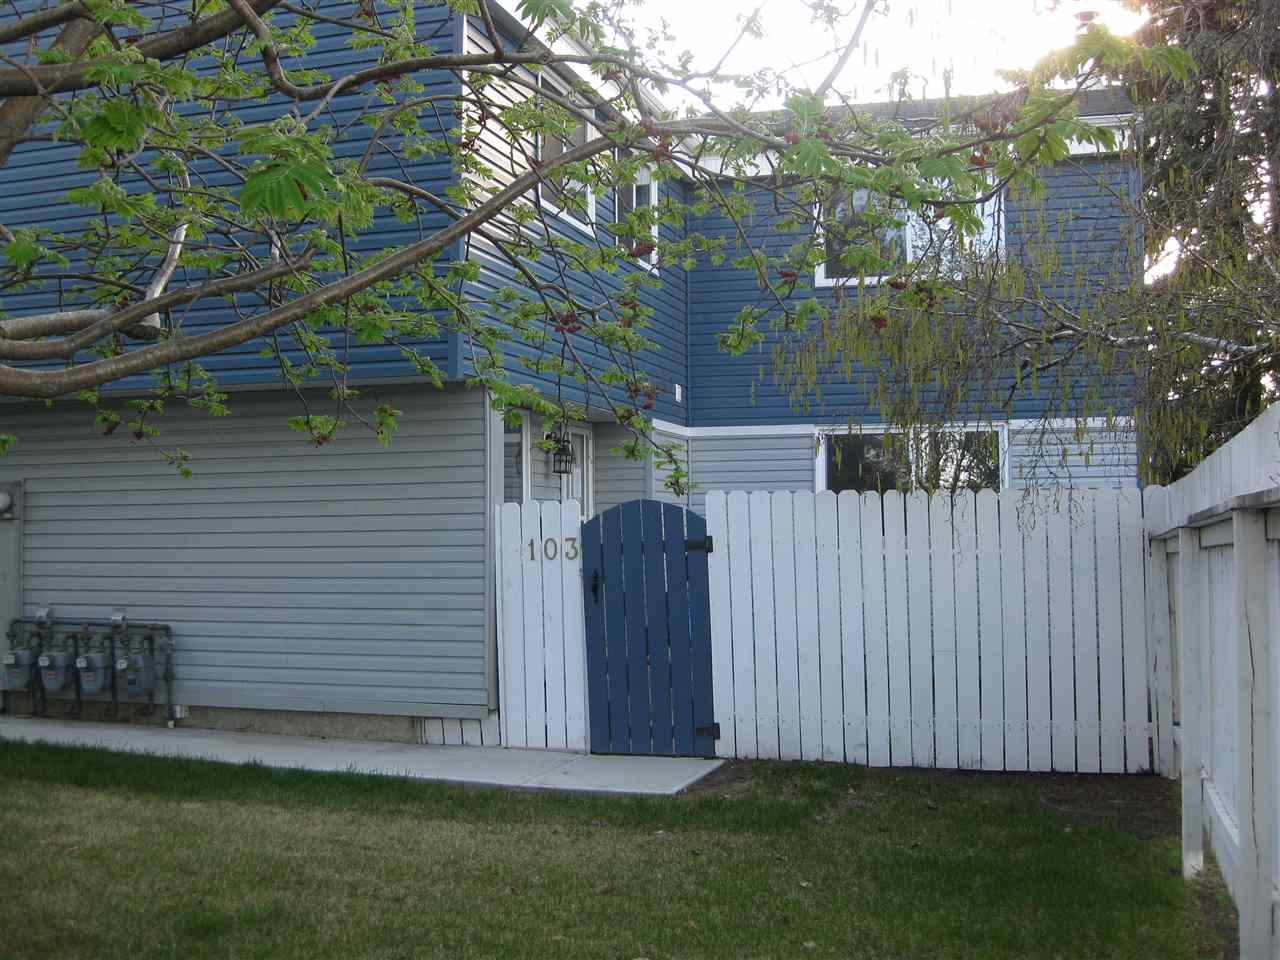 103 14707 53 Avenue NW, 3 bed, 1.1 bath, at $192,500